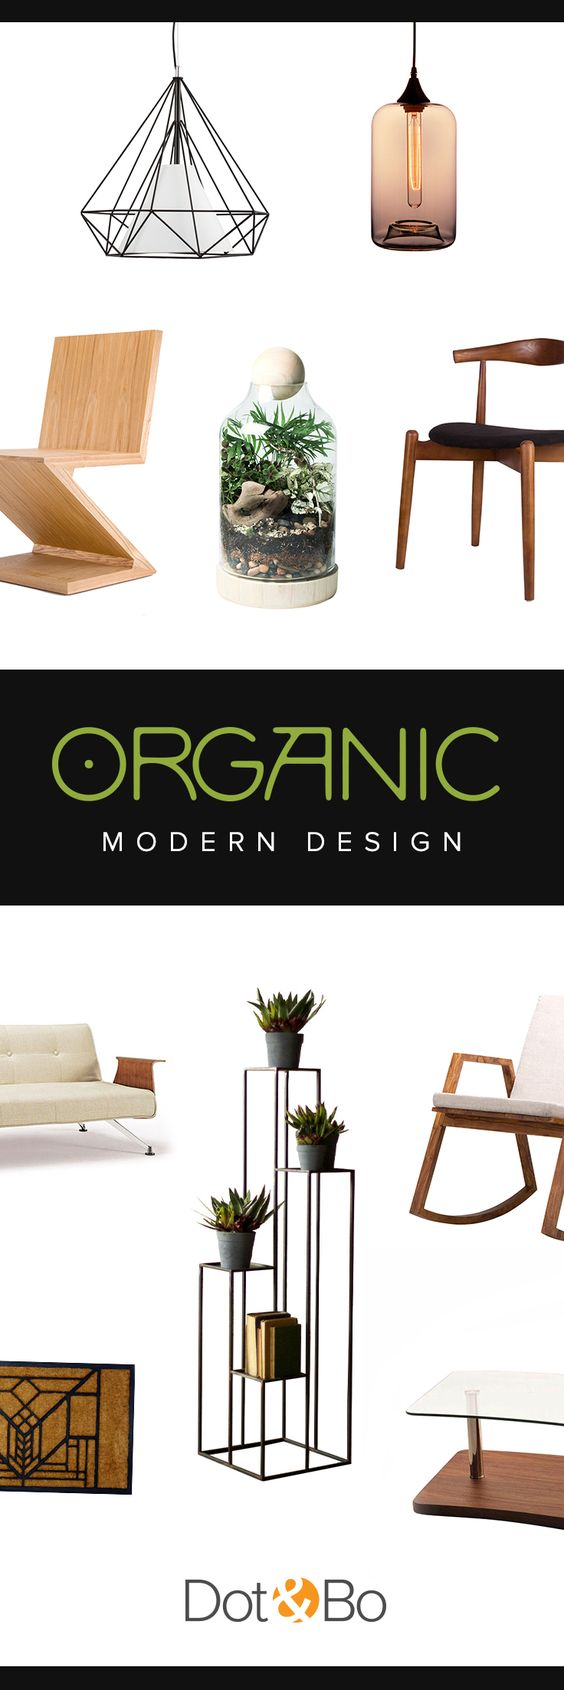 Memorial Day Weekend Clearance Sale! Shop Modern Retro Furniture & Décor Before It's All Gone at dotandbo.com | Sale Runs 5/22/15-5/25/15